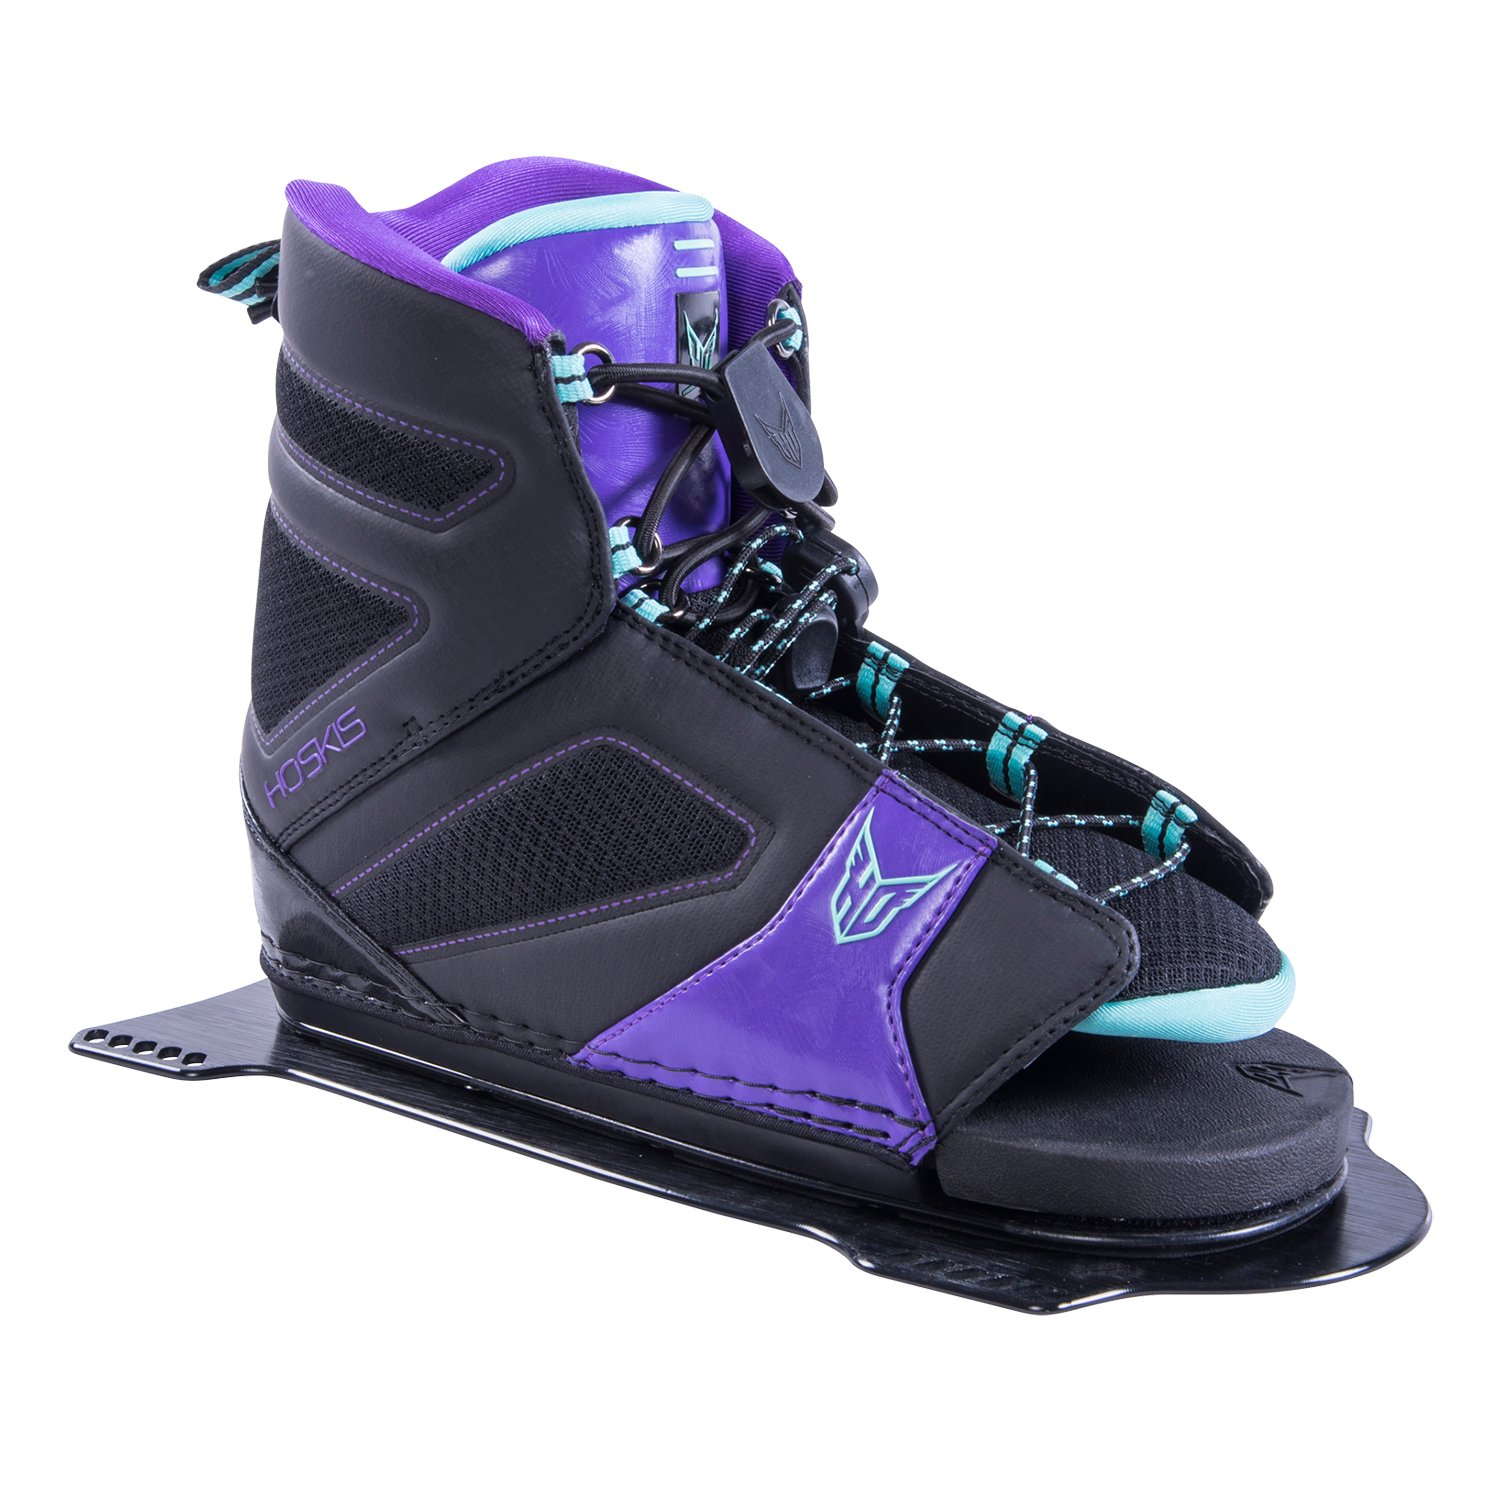 HO Sports 2018 FreeMAX Front Plate Women's Waterski Boots-5.5-9.5 by HO Sports (Image #1)